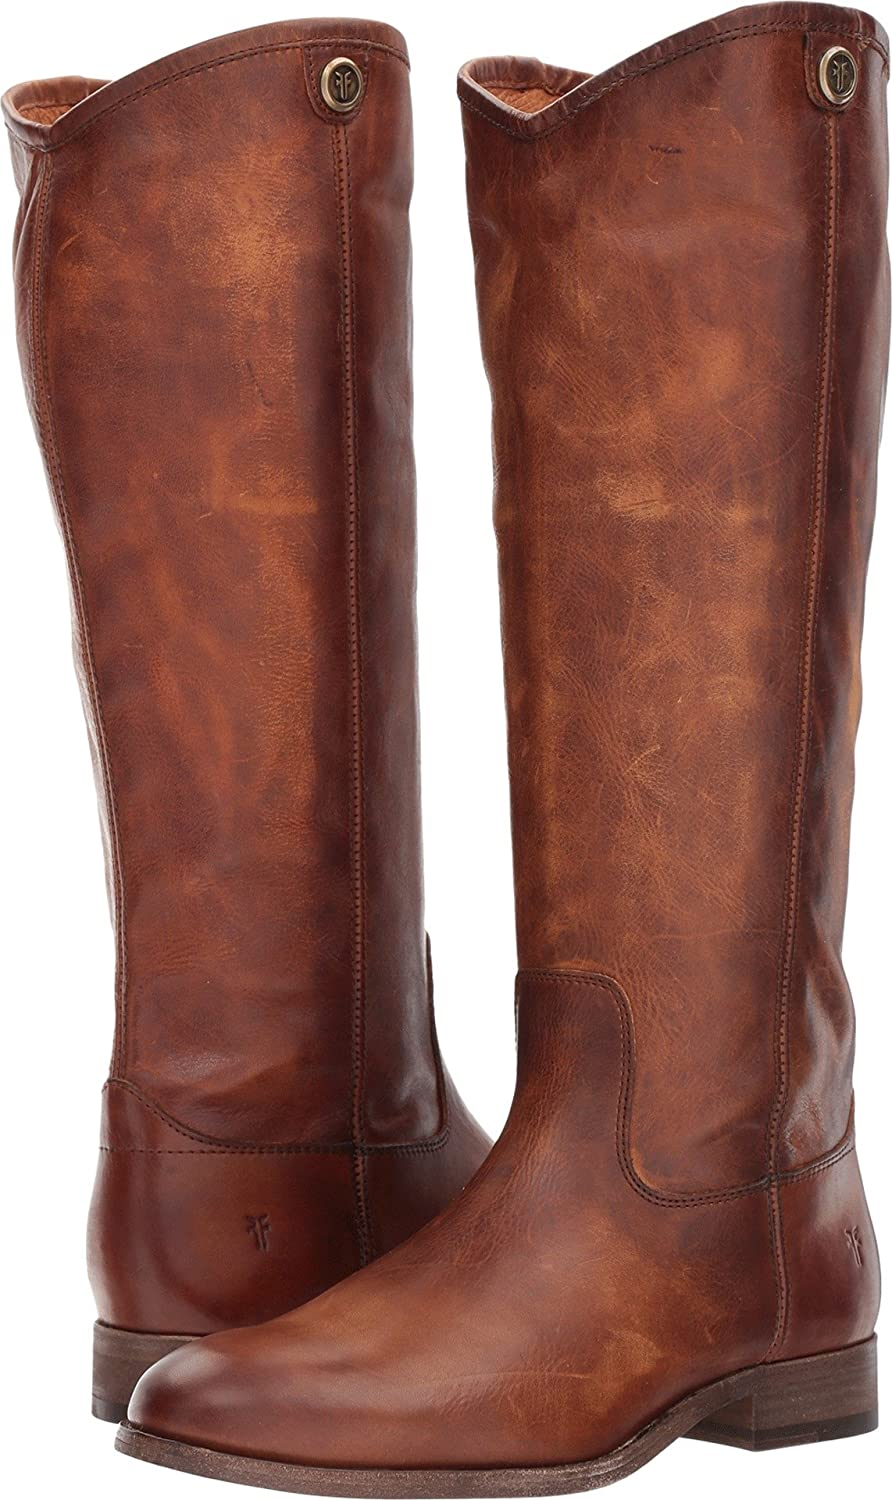 FRYE Women's Melissa Button 2 Riding Boot B06VSCB5C3 6.5 B(M) US|Cognac Extended